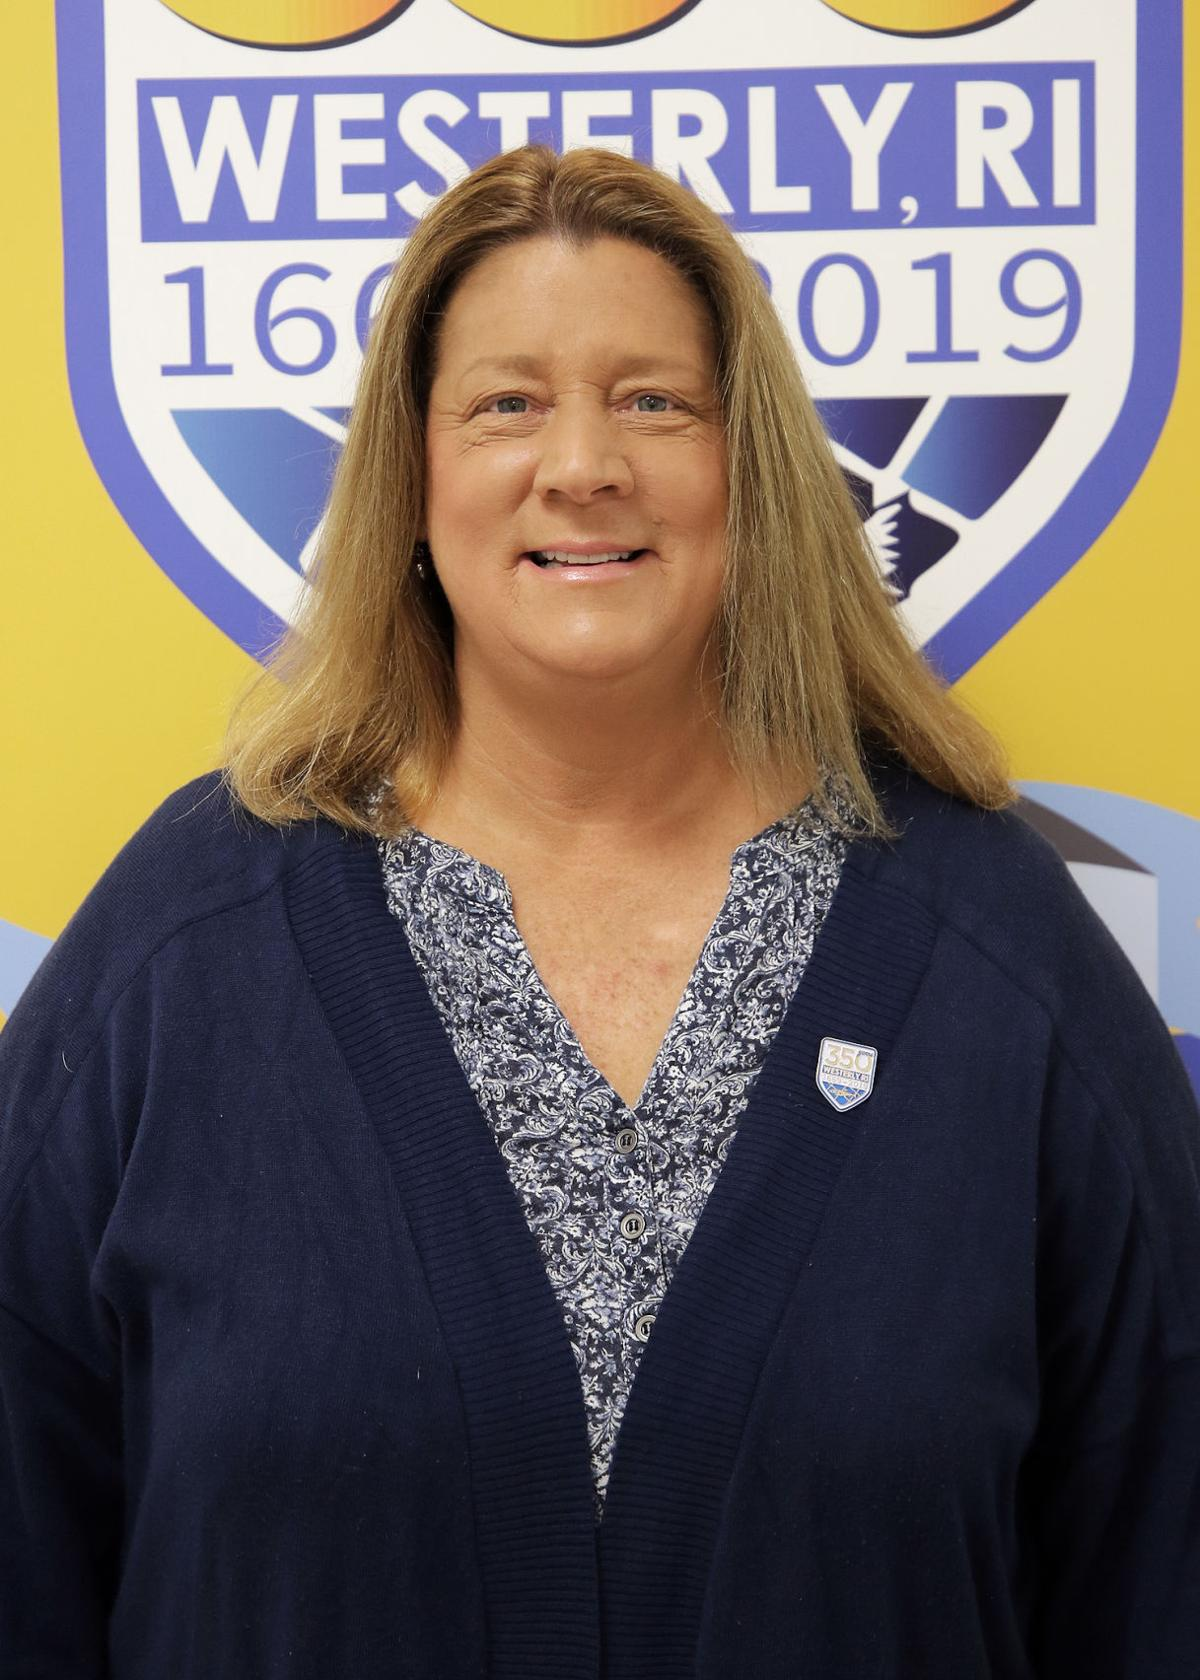 Diane Chiaradio-Bowdy, Westerly 350th Anniversary Committee Member, Ocean Community Chamber of Commerce, Saturday, April 13th, 2019, Westerly RI.   Jackie Turner, Special to The Sun.